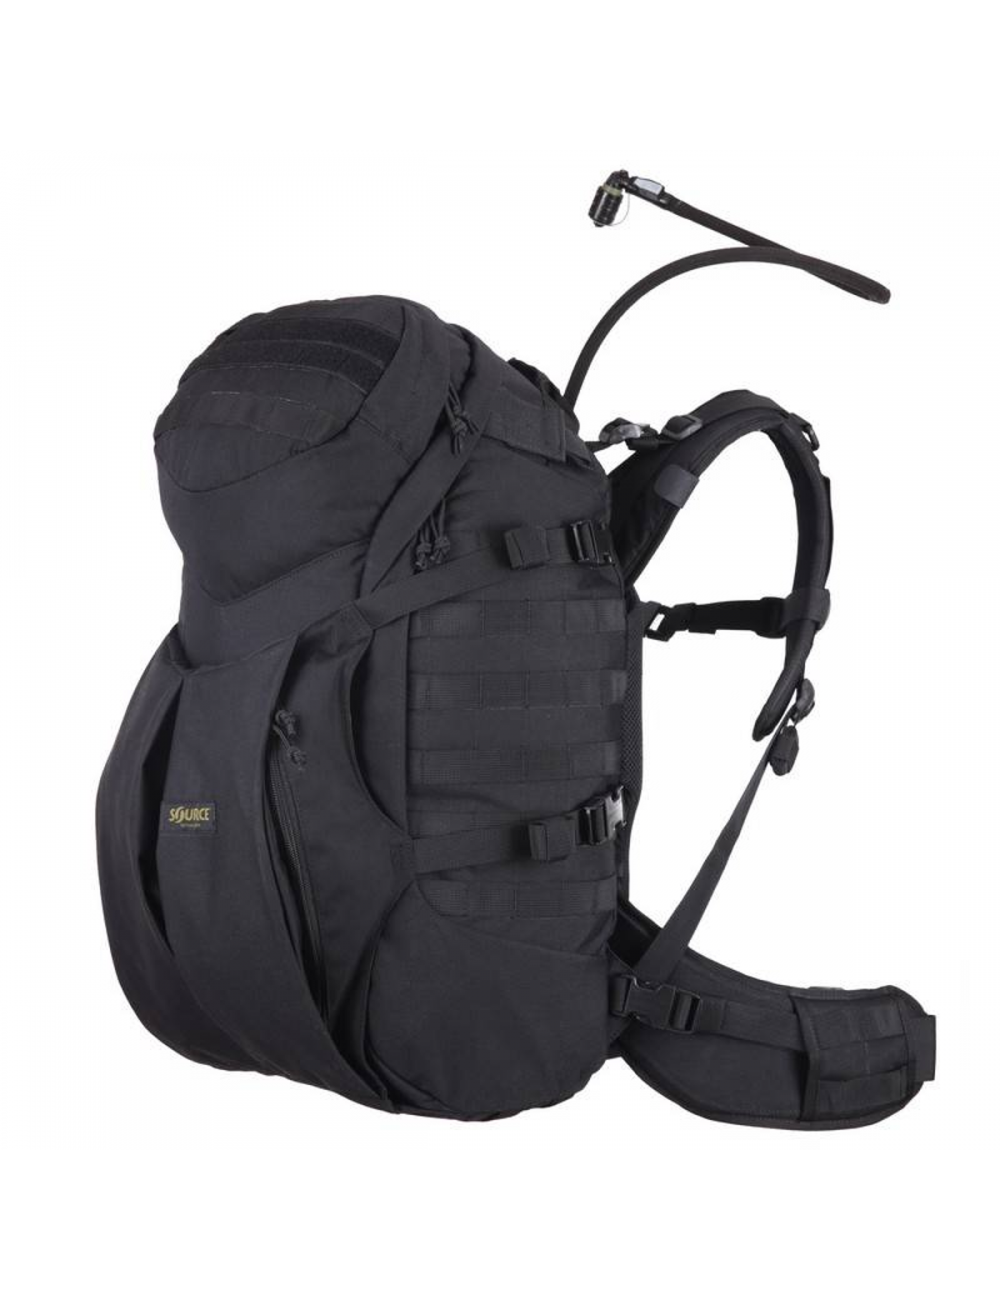 Source Tactical backpack water bag, Double D 45Q - Black